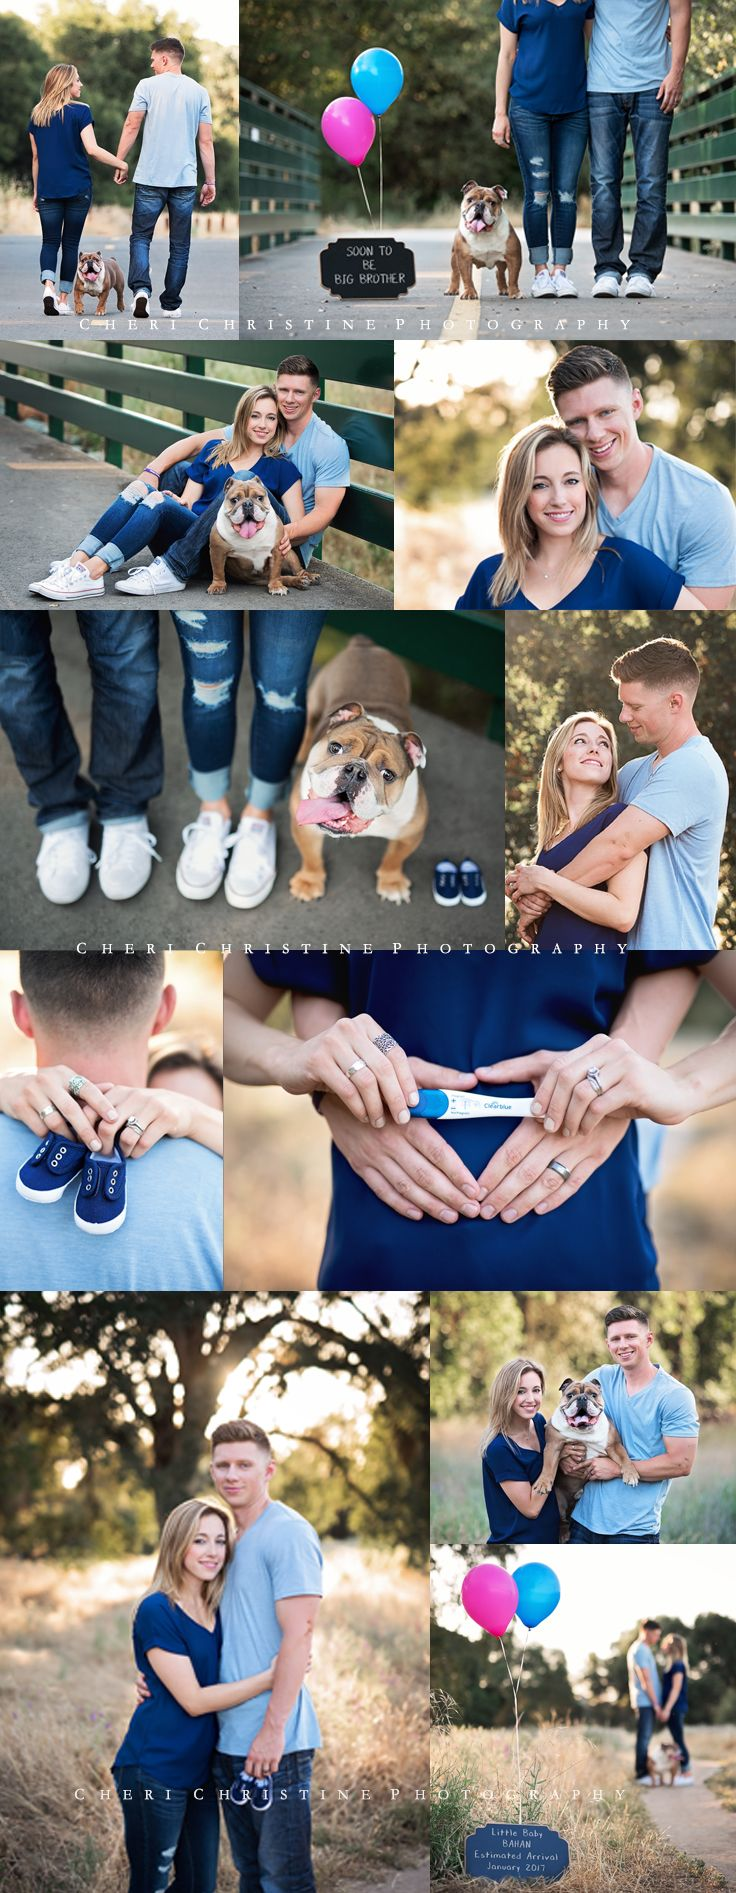 Pregnancy Reveal with Dog  Cheri Christine Photography  Maternity Pregnancy Family Couples